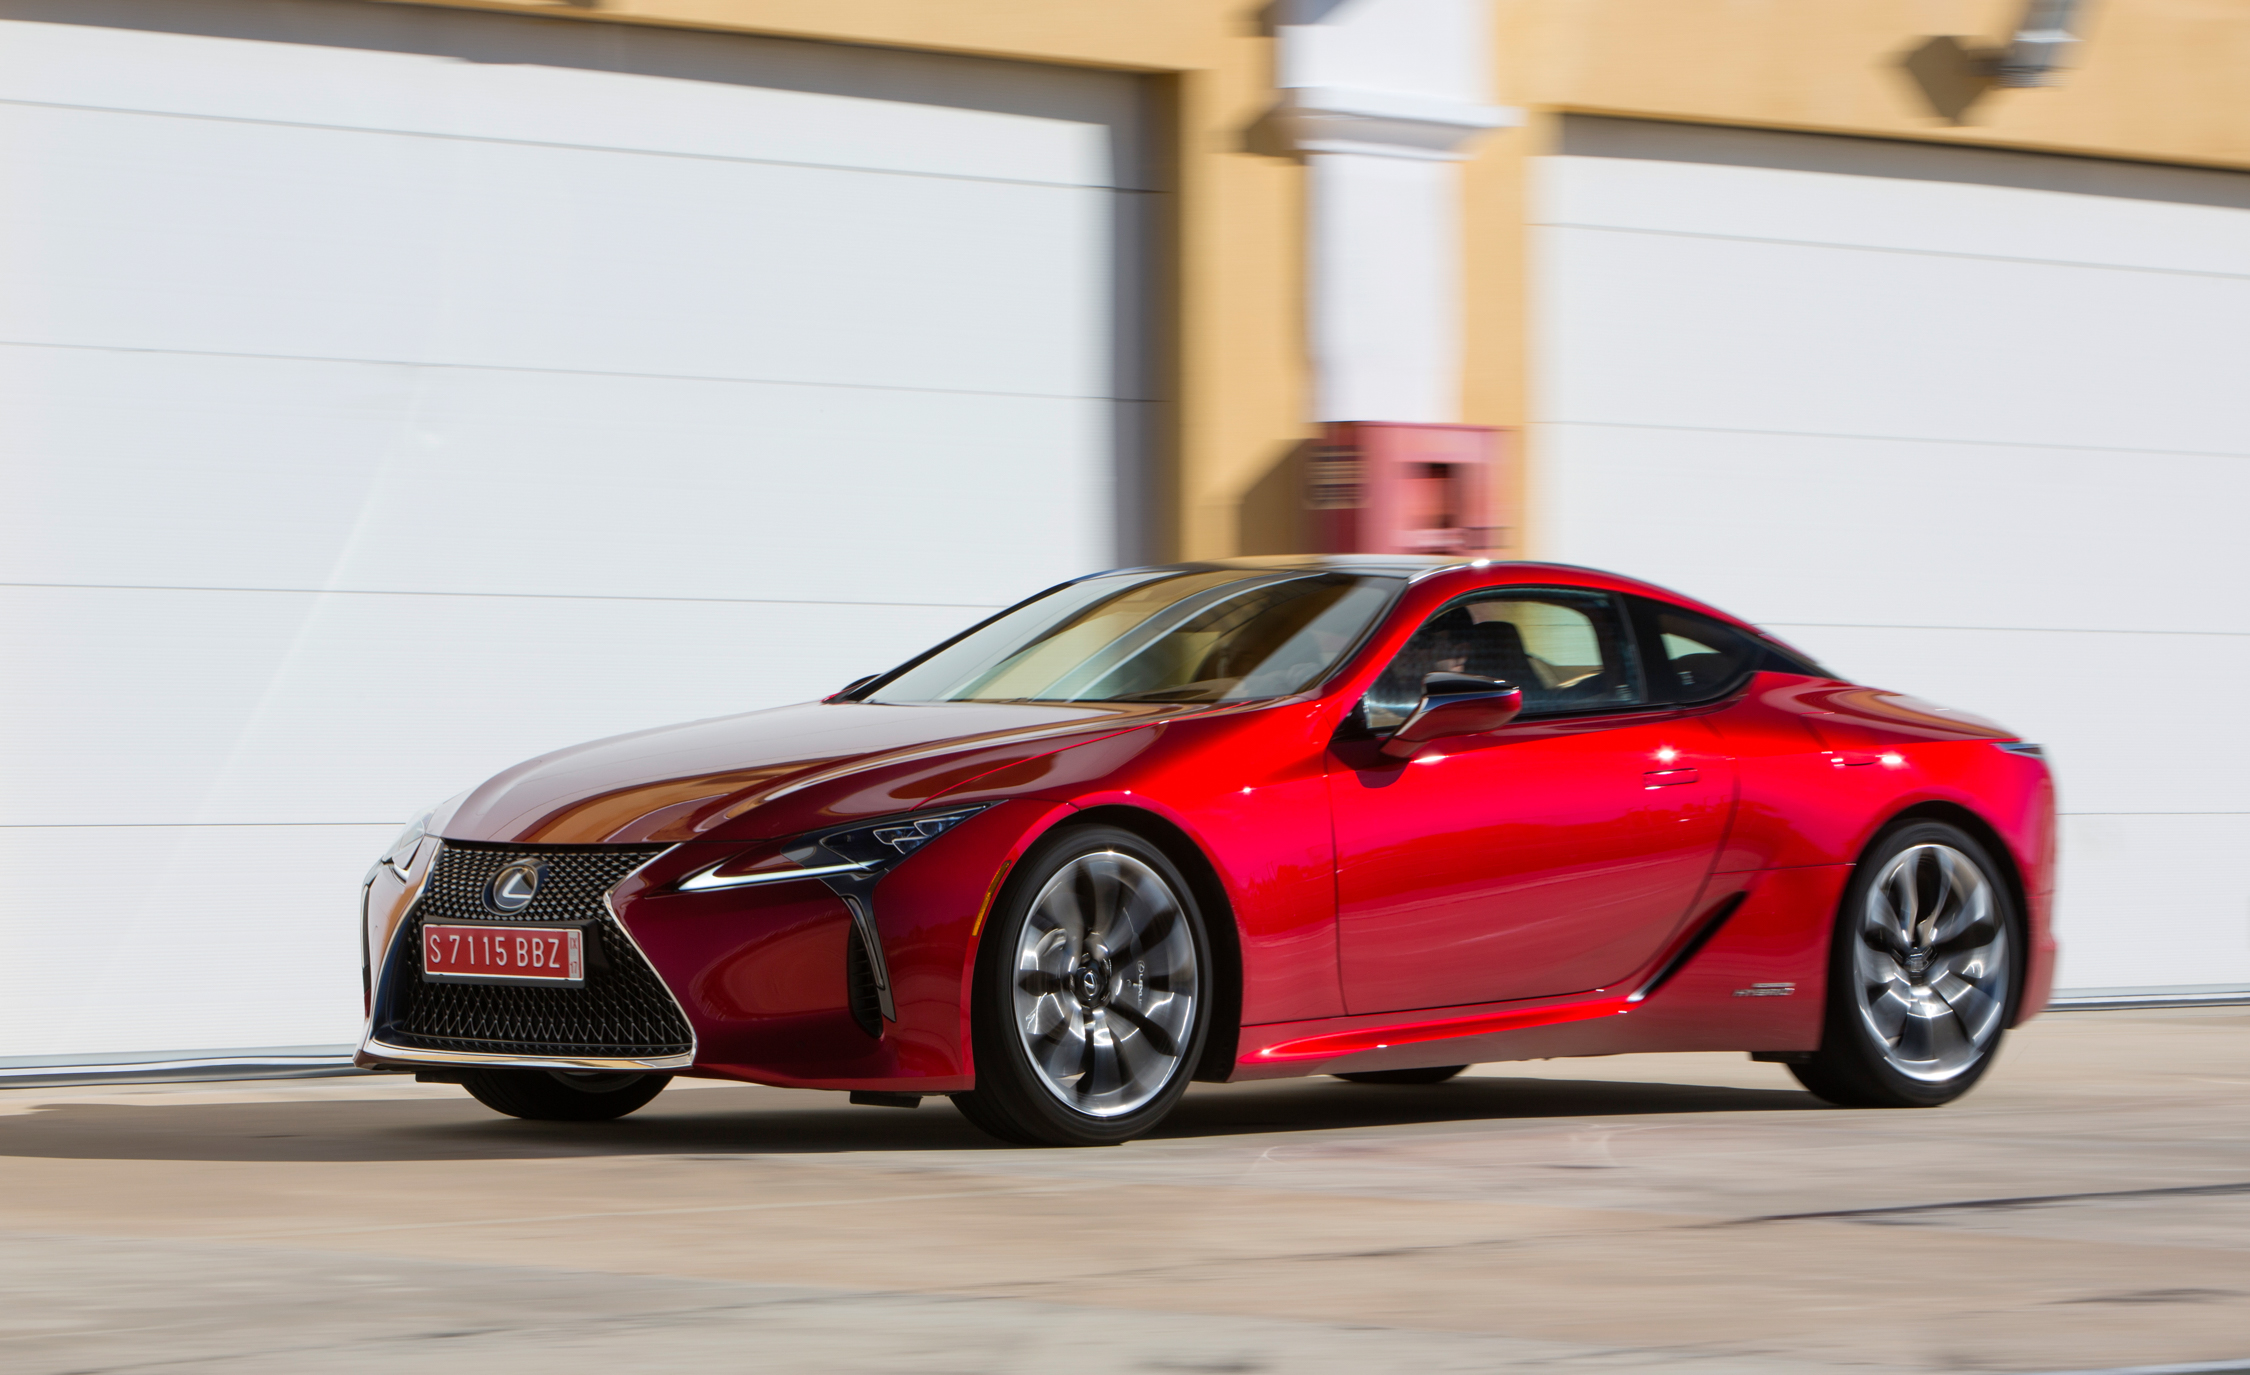 2018 Lexus LC 500 Pictures Gallery (84 Images)